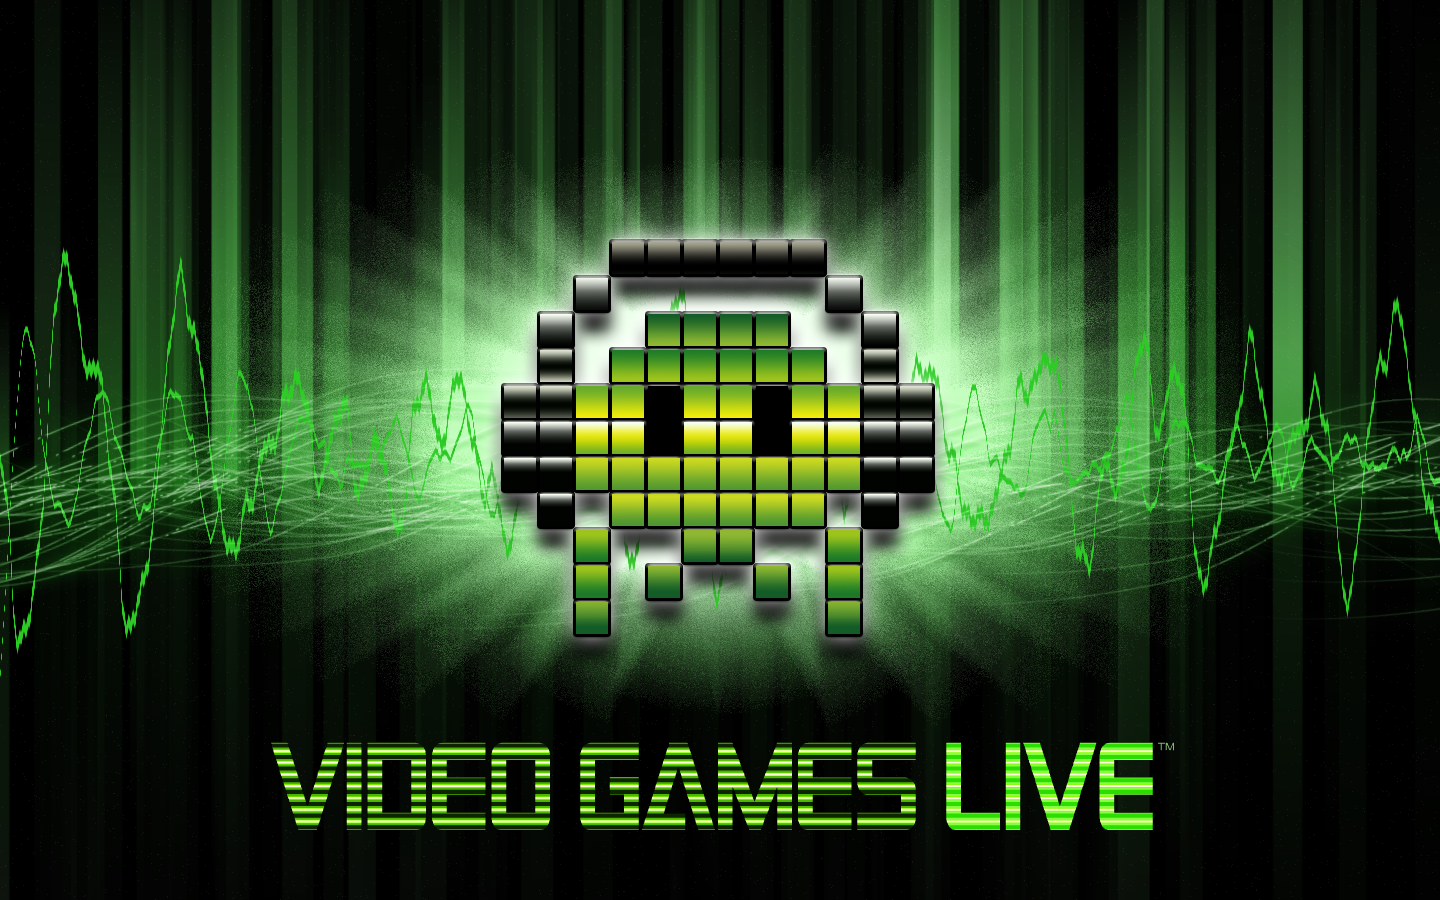 Video Game Live Wallpapers